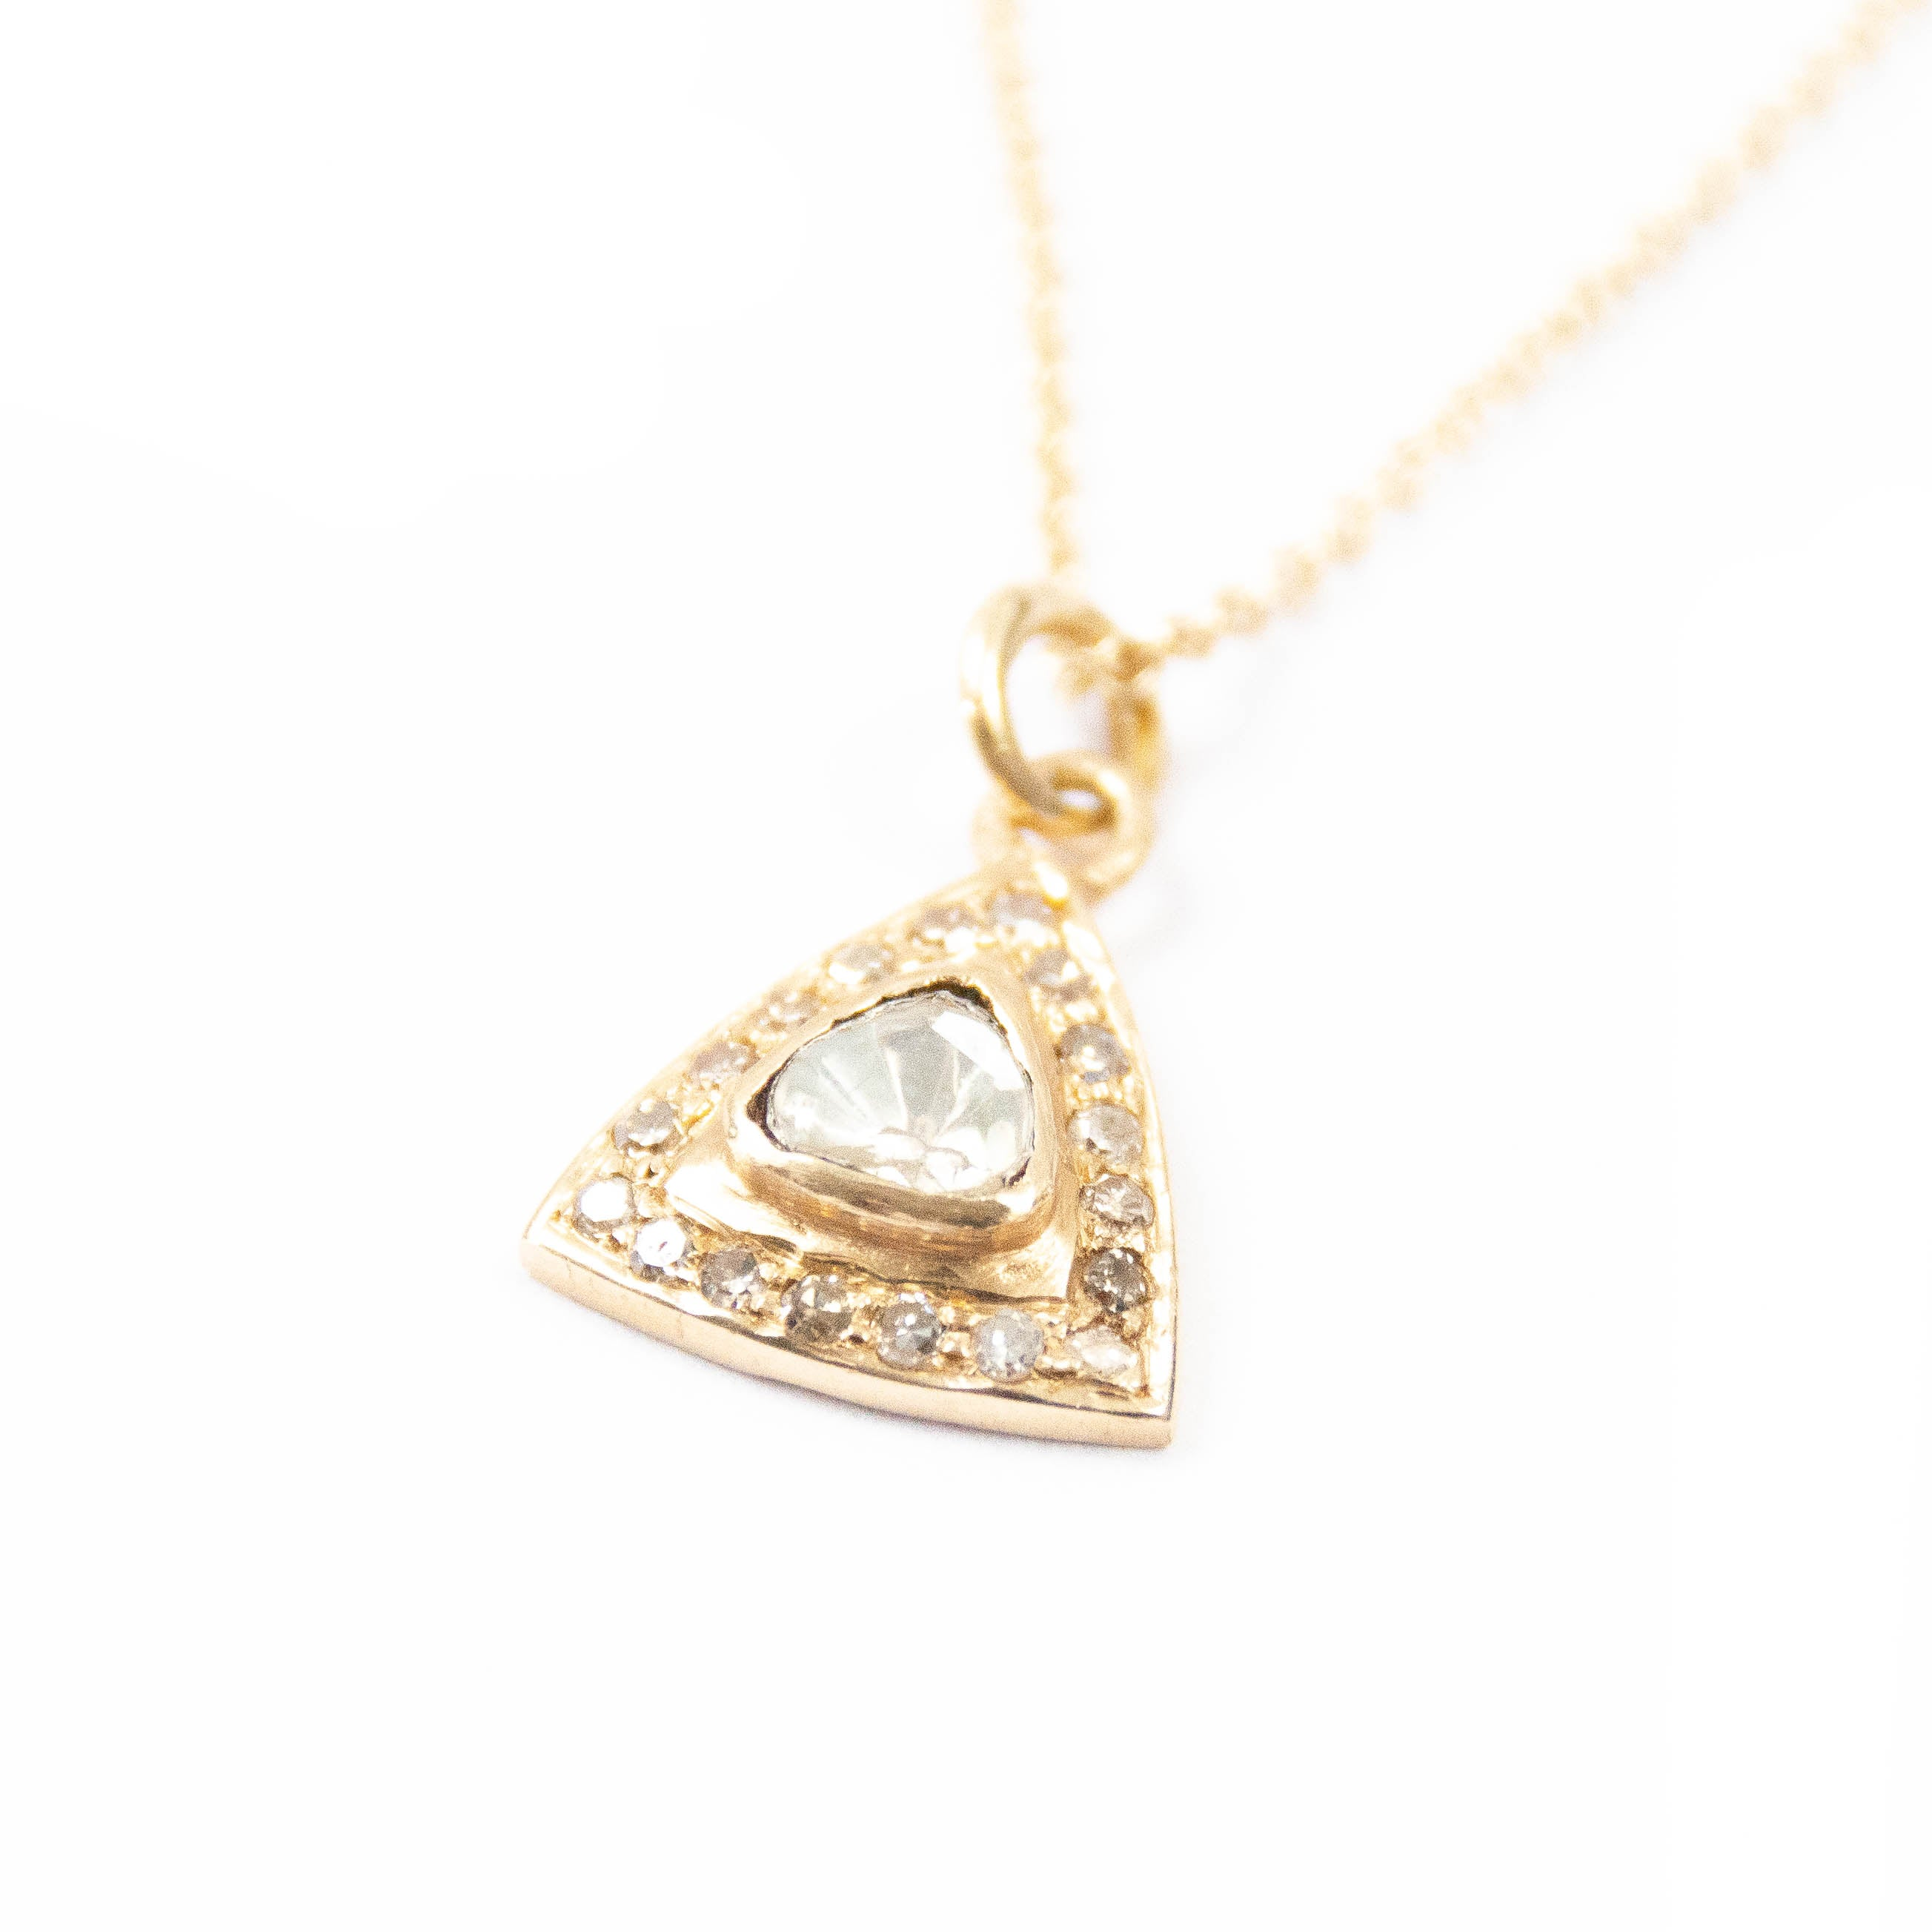 14kt Gold & Diamond Triangle Charm Necklace